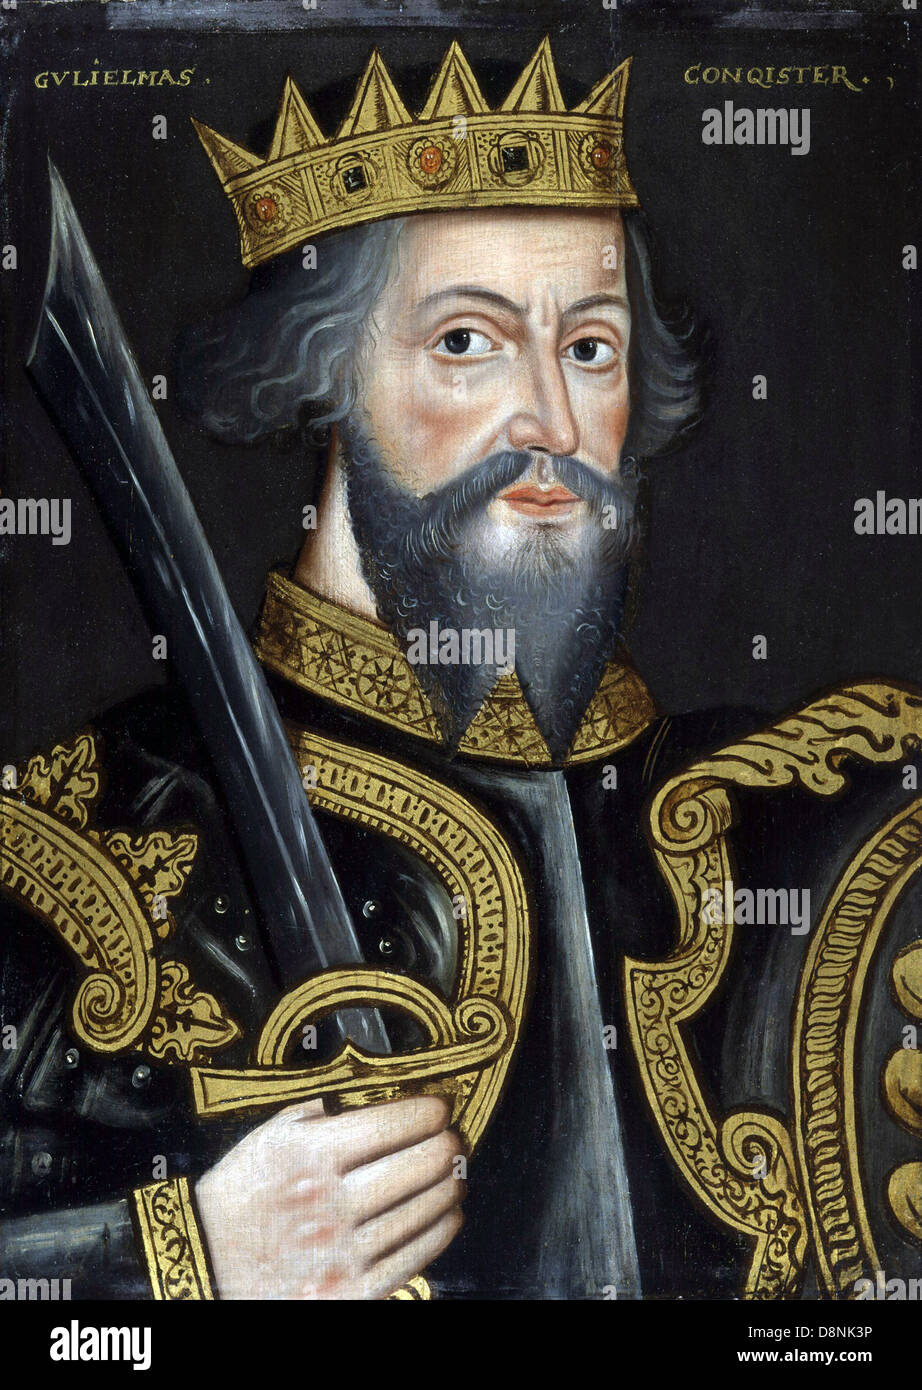 William the Conqueror - Stock Image